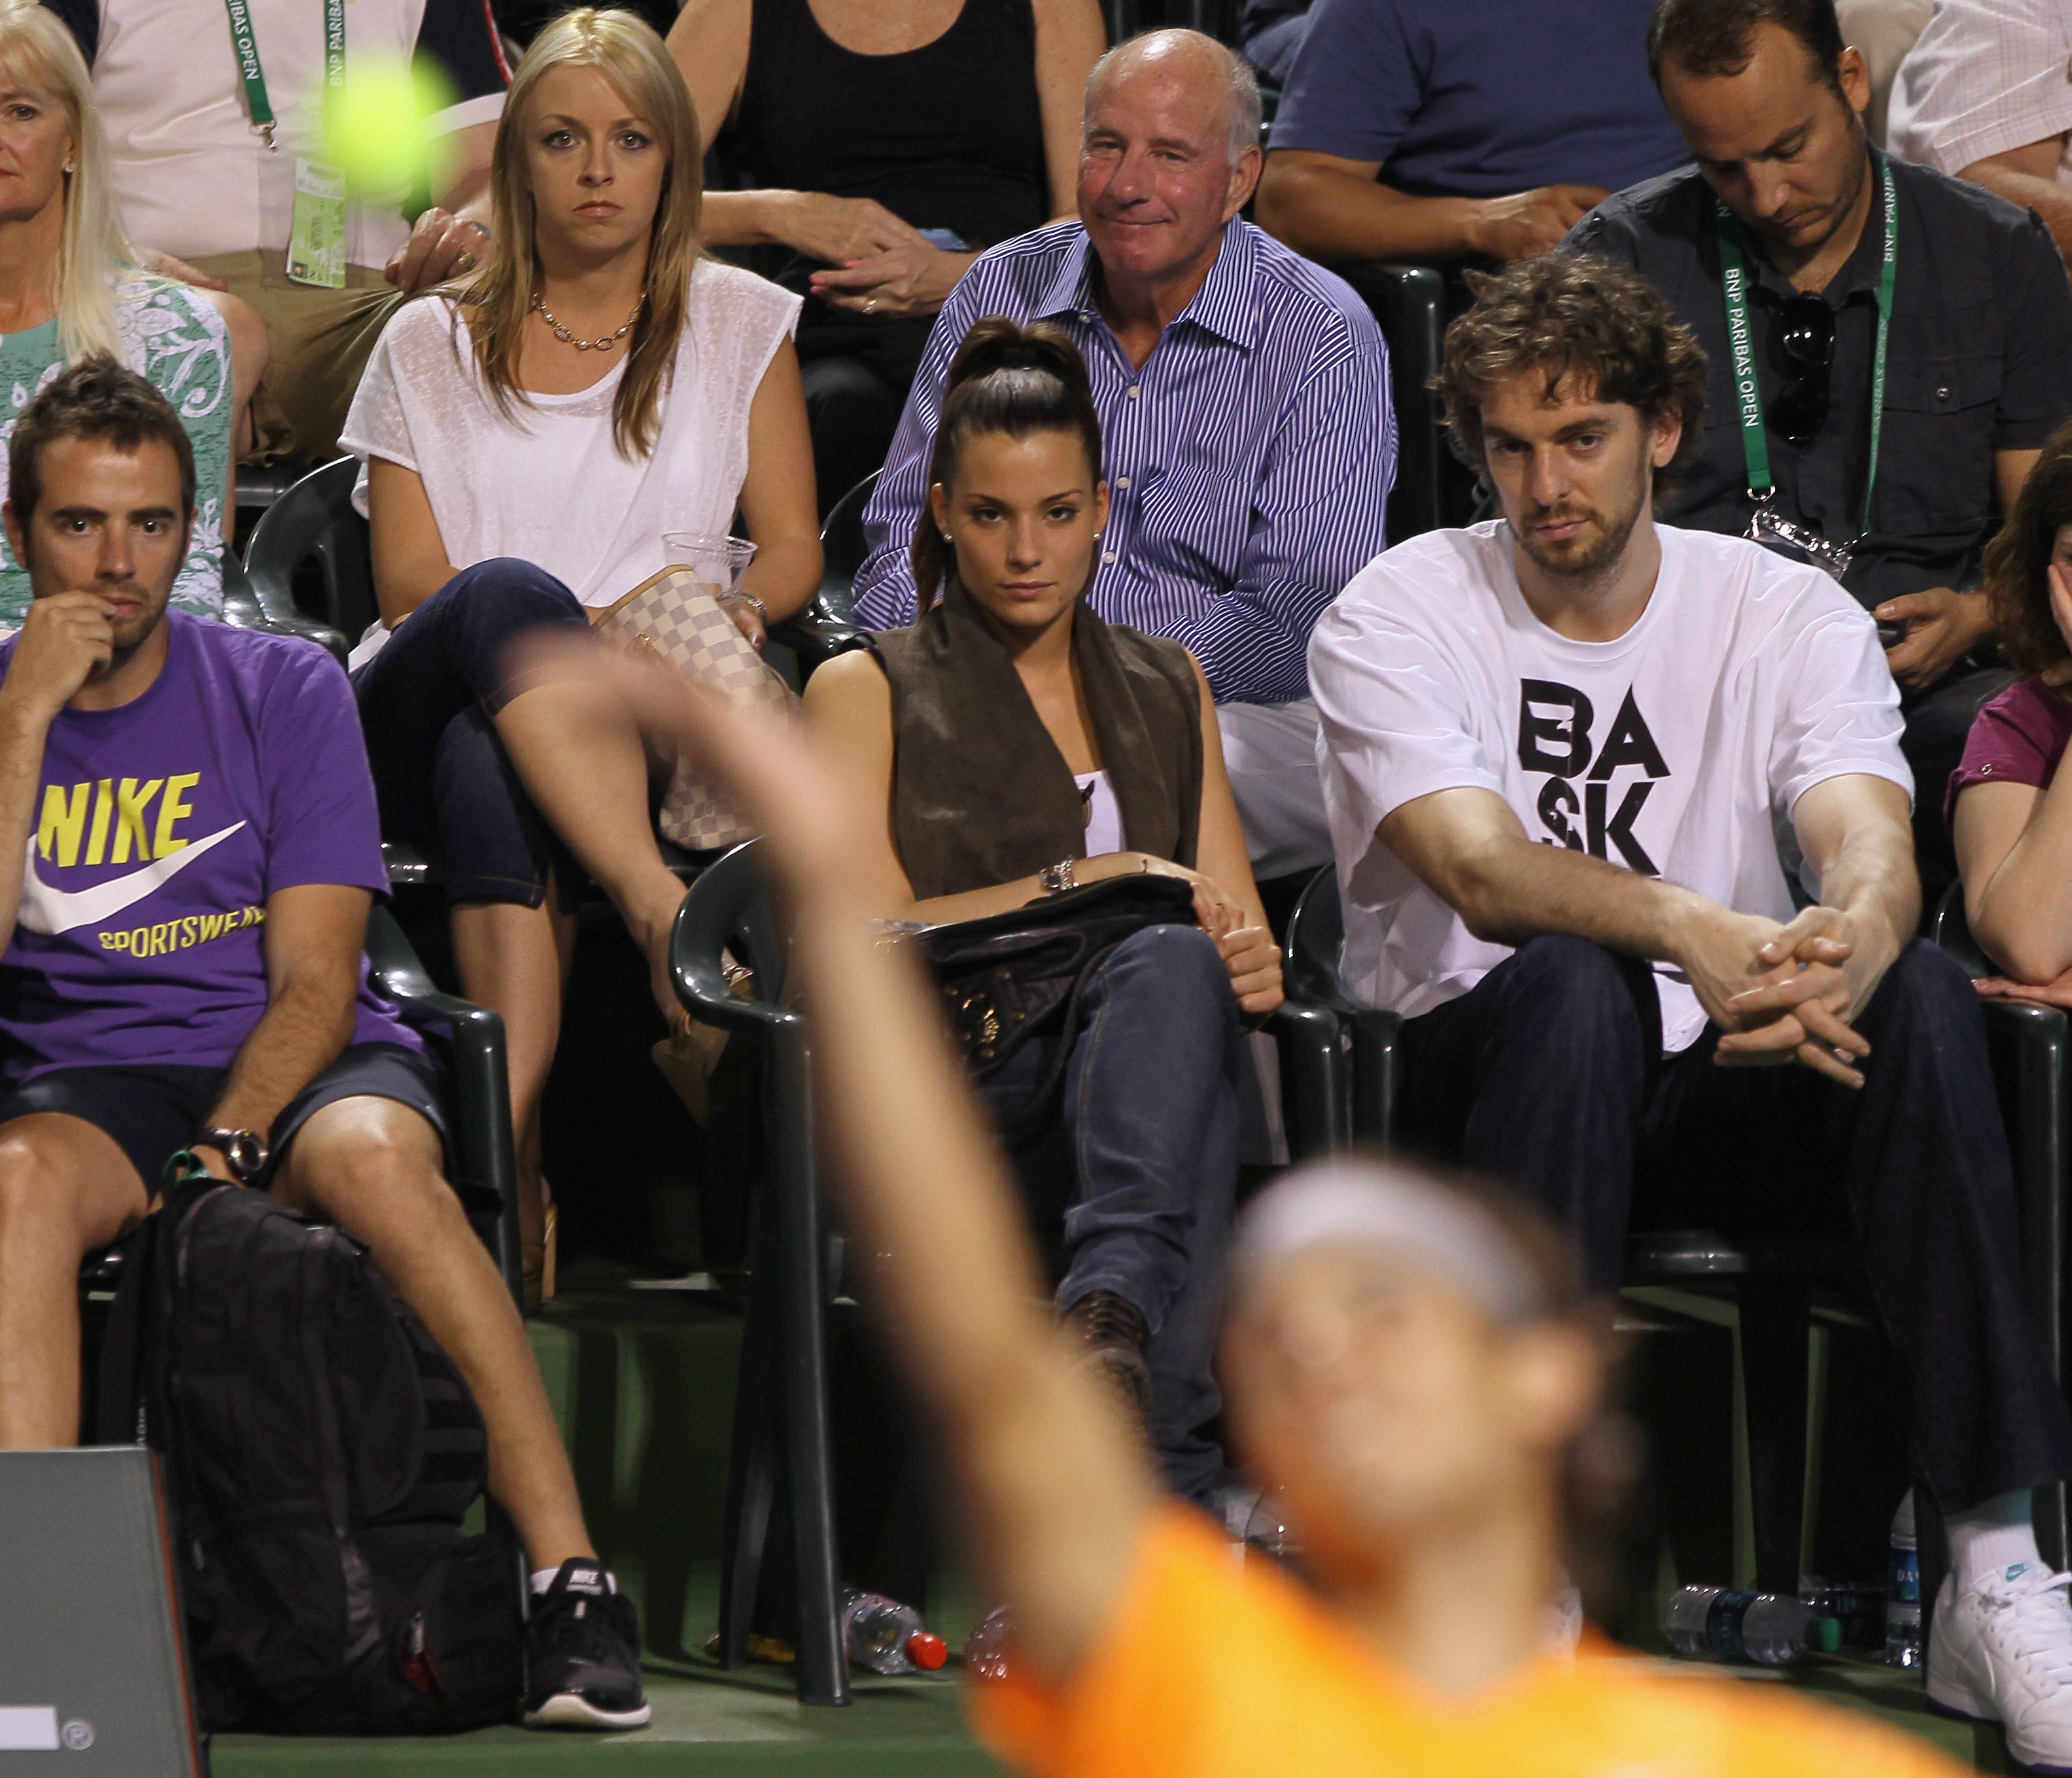 INDIAN WELLS, CA - MARCH 15:  Pau Gasol of the Los Angeles Lakers and his girlfriend watch Rafael Nadal of Spain serve during the BNP Paribas Open at the Indian Wells Tennis Garden on March 15, 2011 in Indian Wells, California.  (Photo by Jeff Gross/Getty